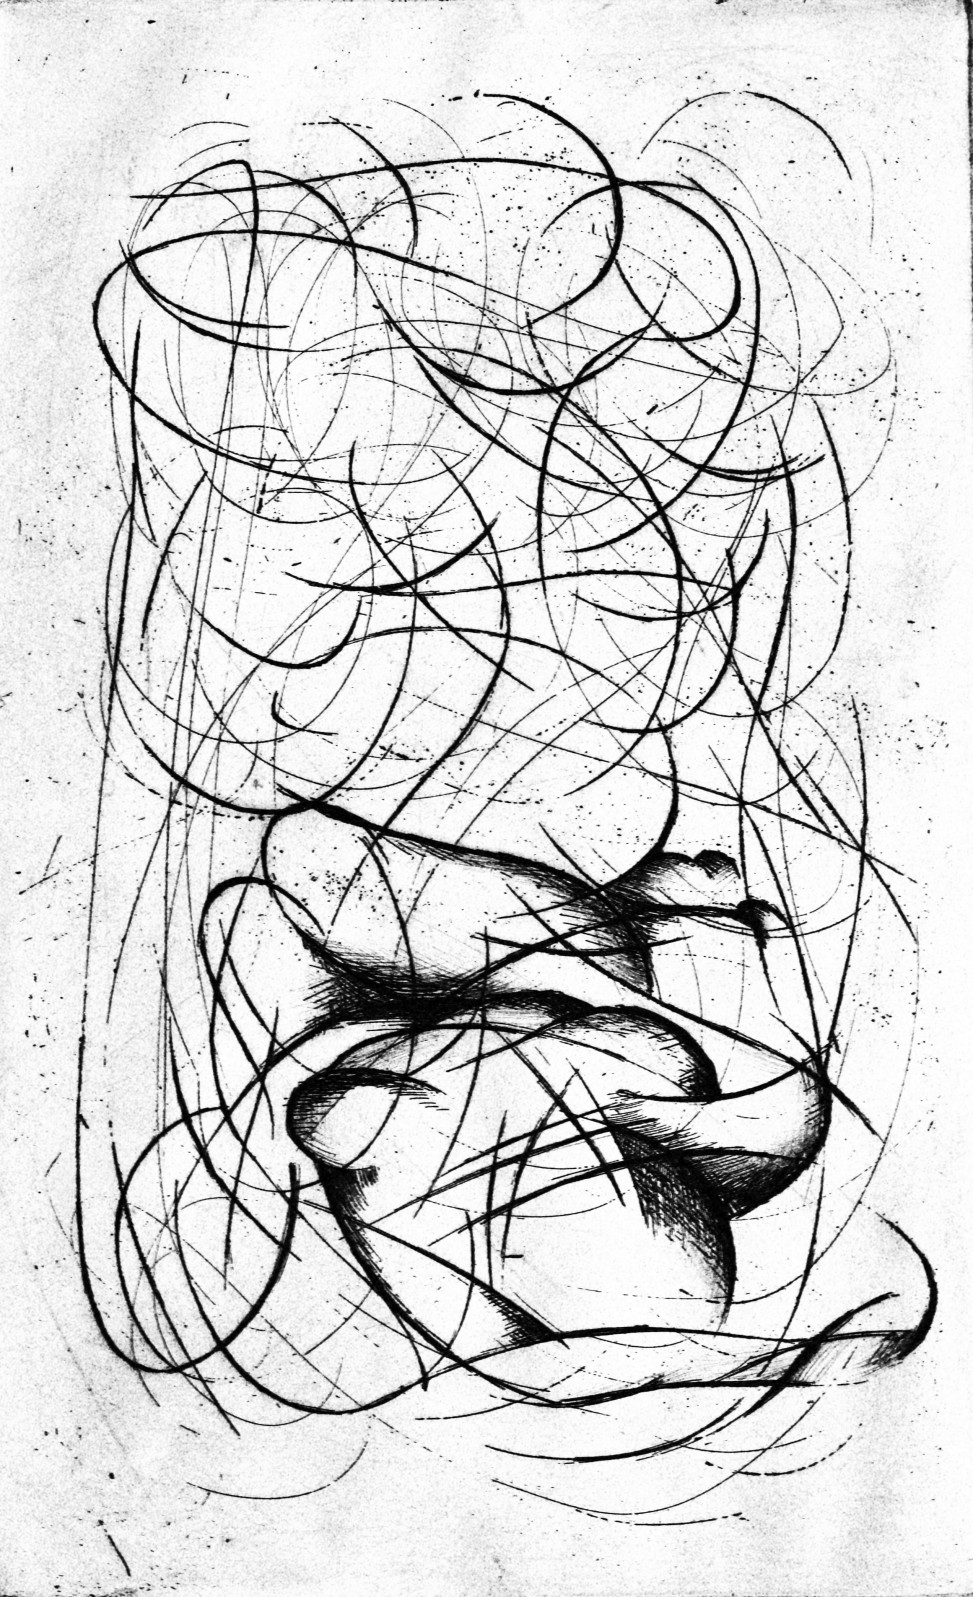 2015, Naked woman, Etching on cotton paper